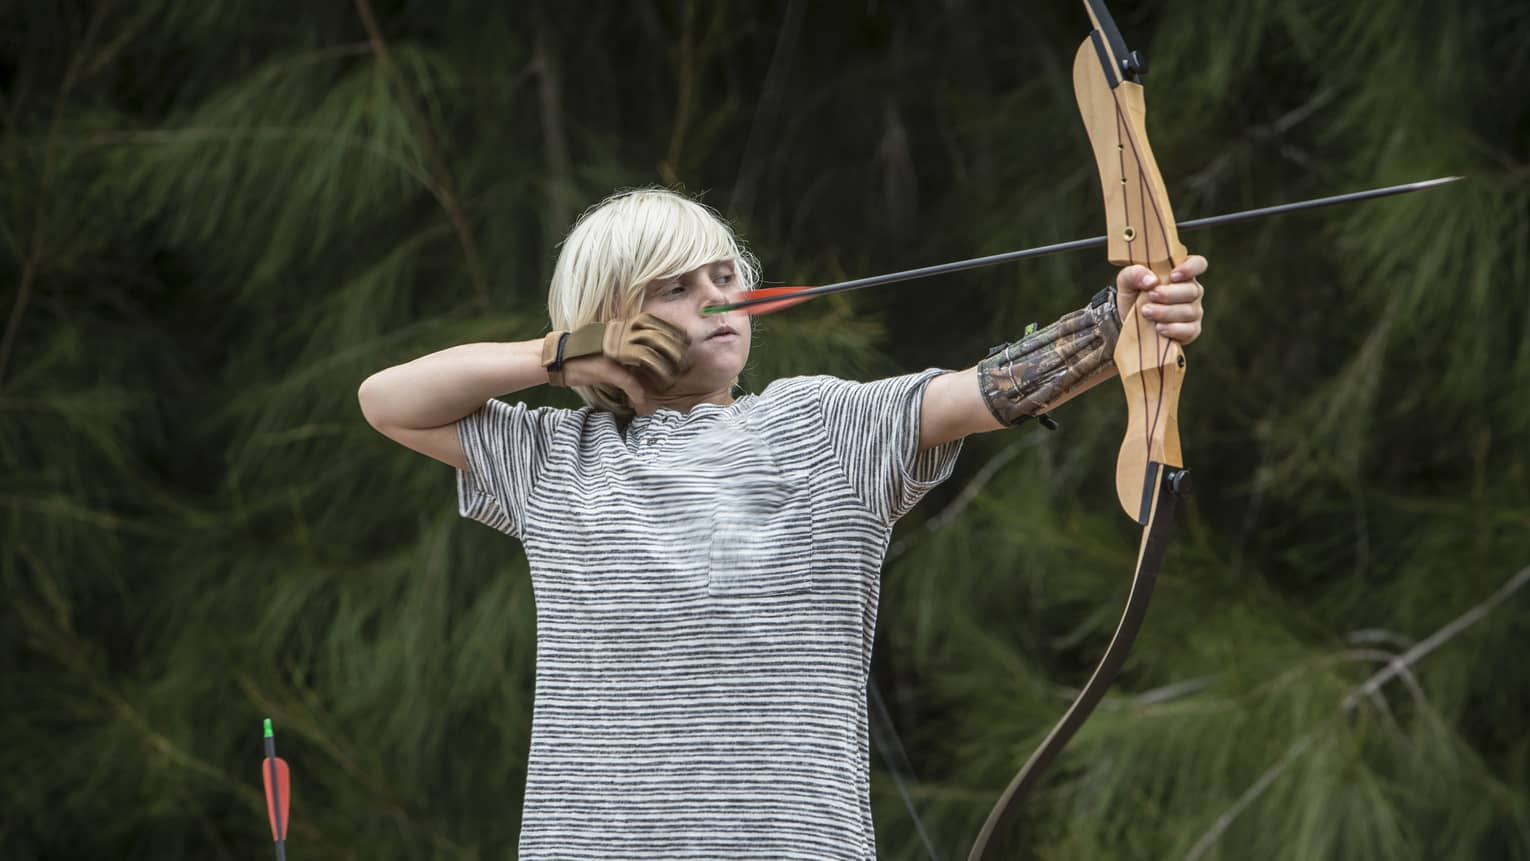 A young boy steadies his bow as he prepares to shoot an arrow at a target